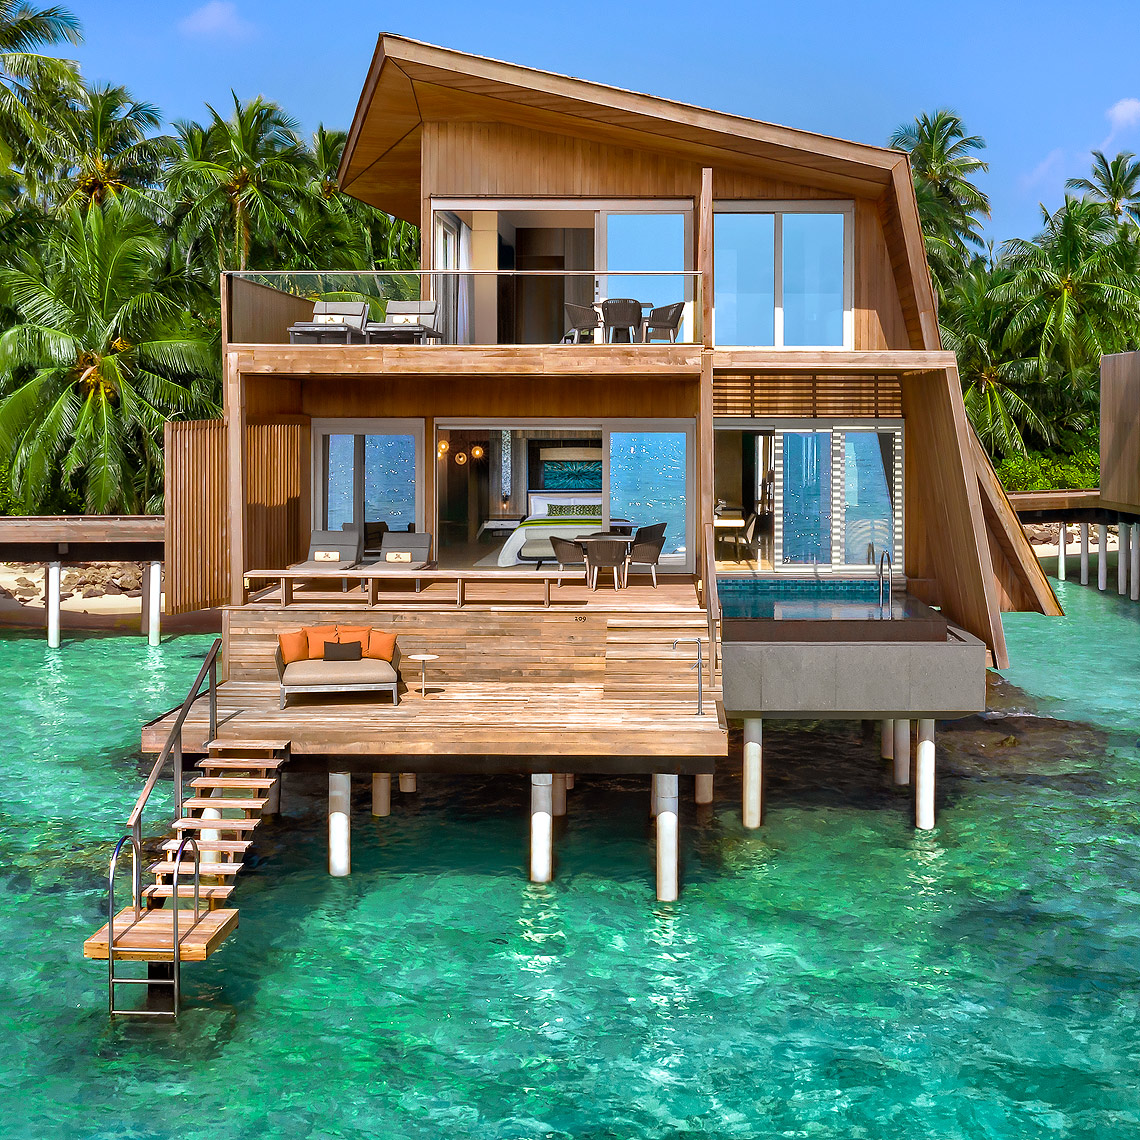 St_Regis_Maldives_2_Bedroom_Over_Water_Villa